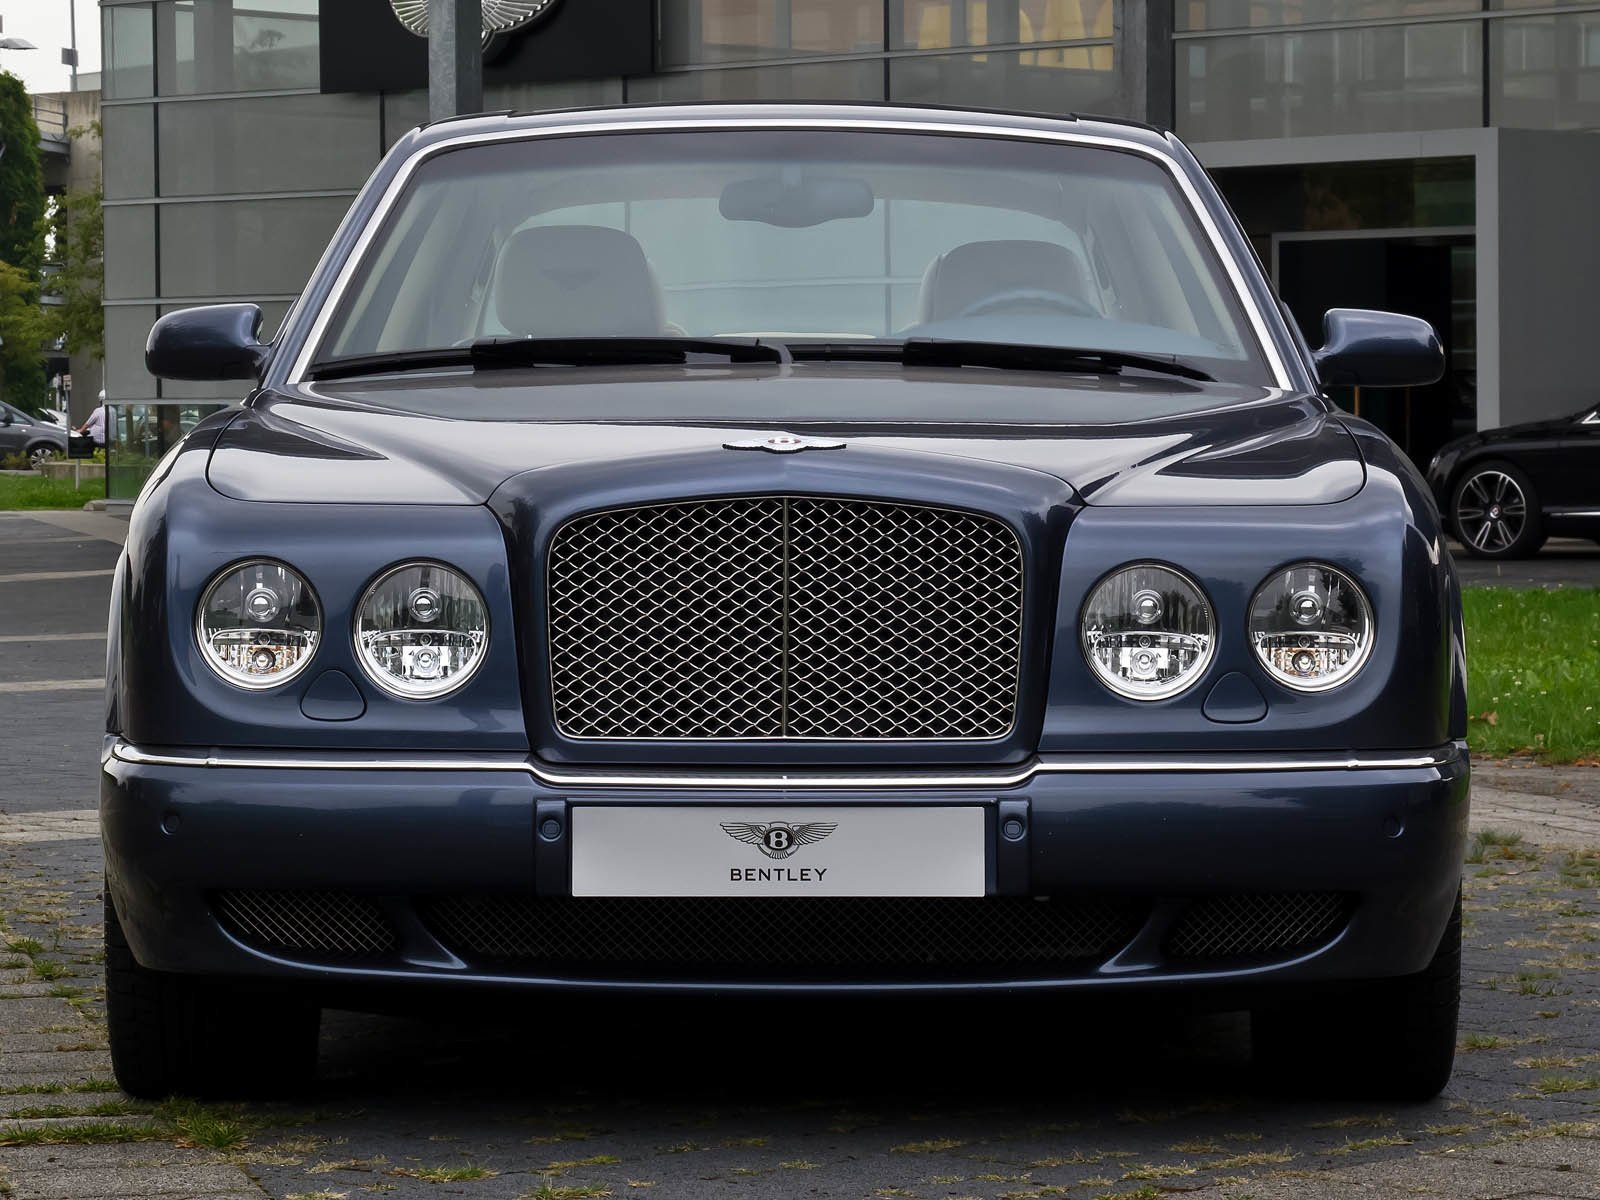 Latest Wallpapers Bentley Arnage Car Wallpapers Free Download